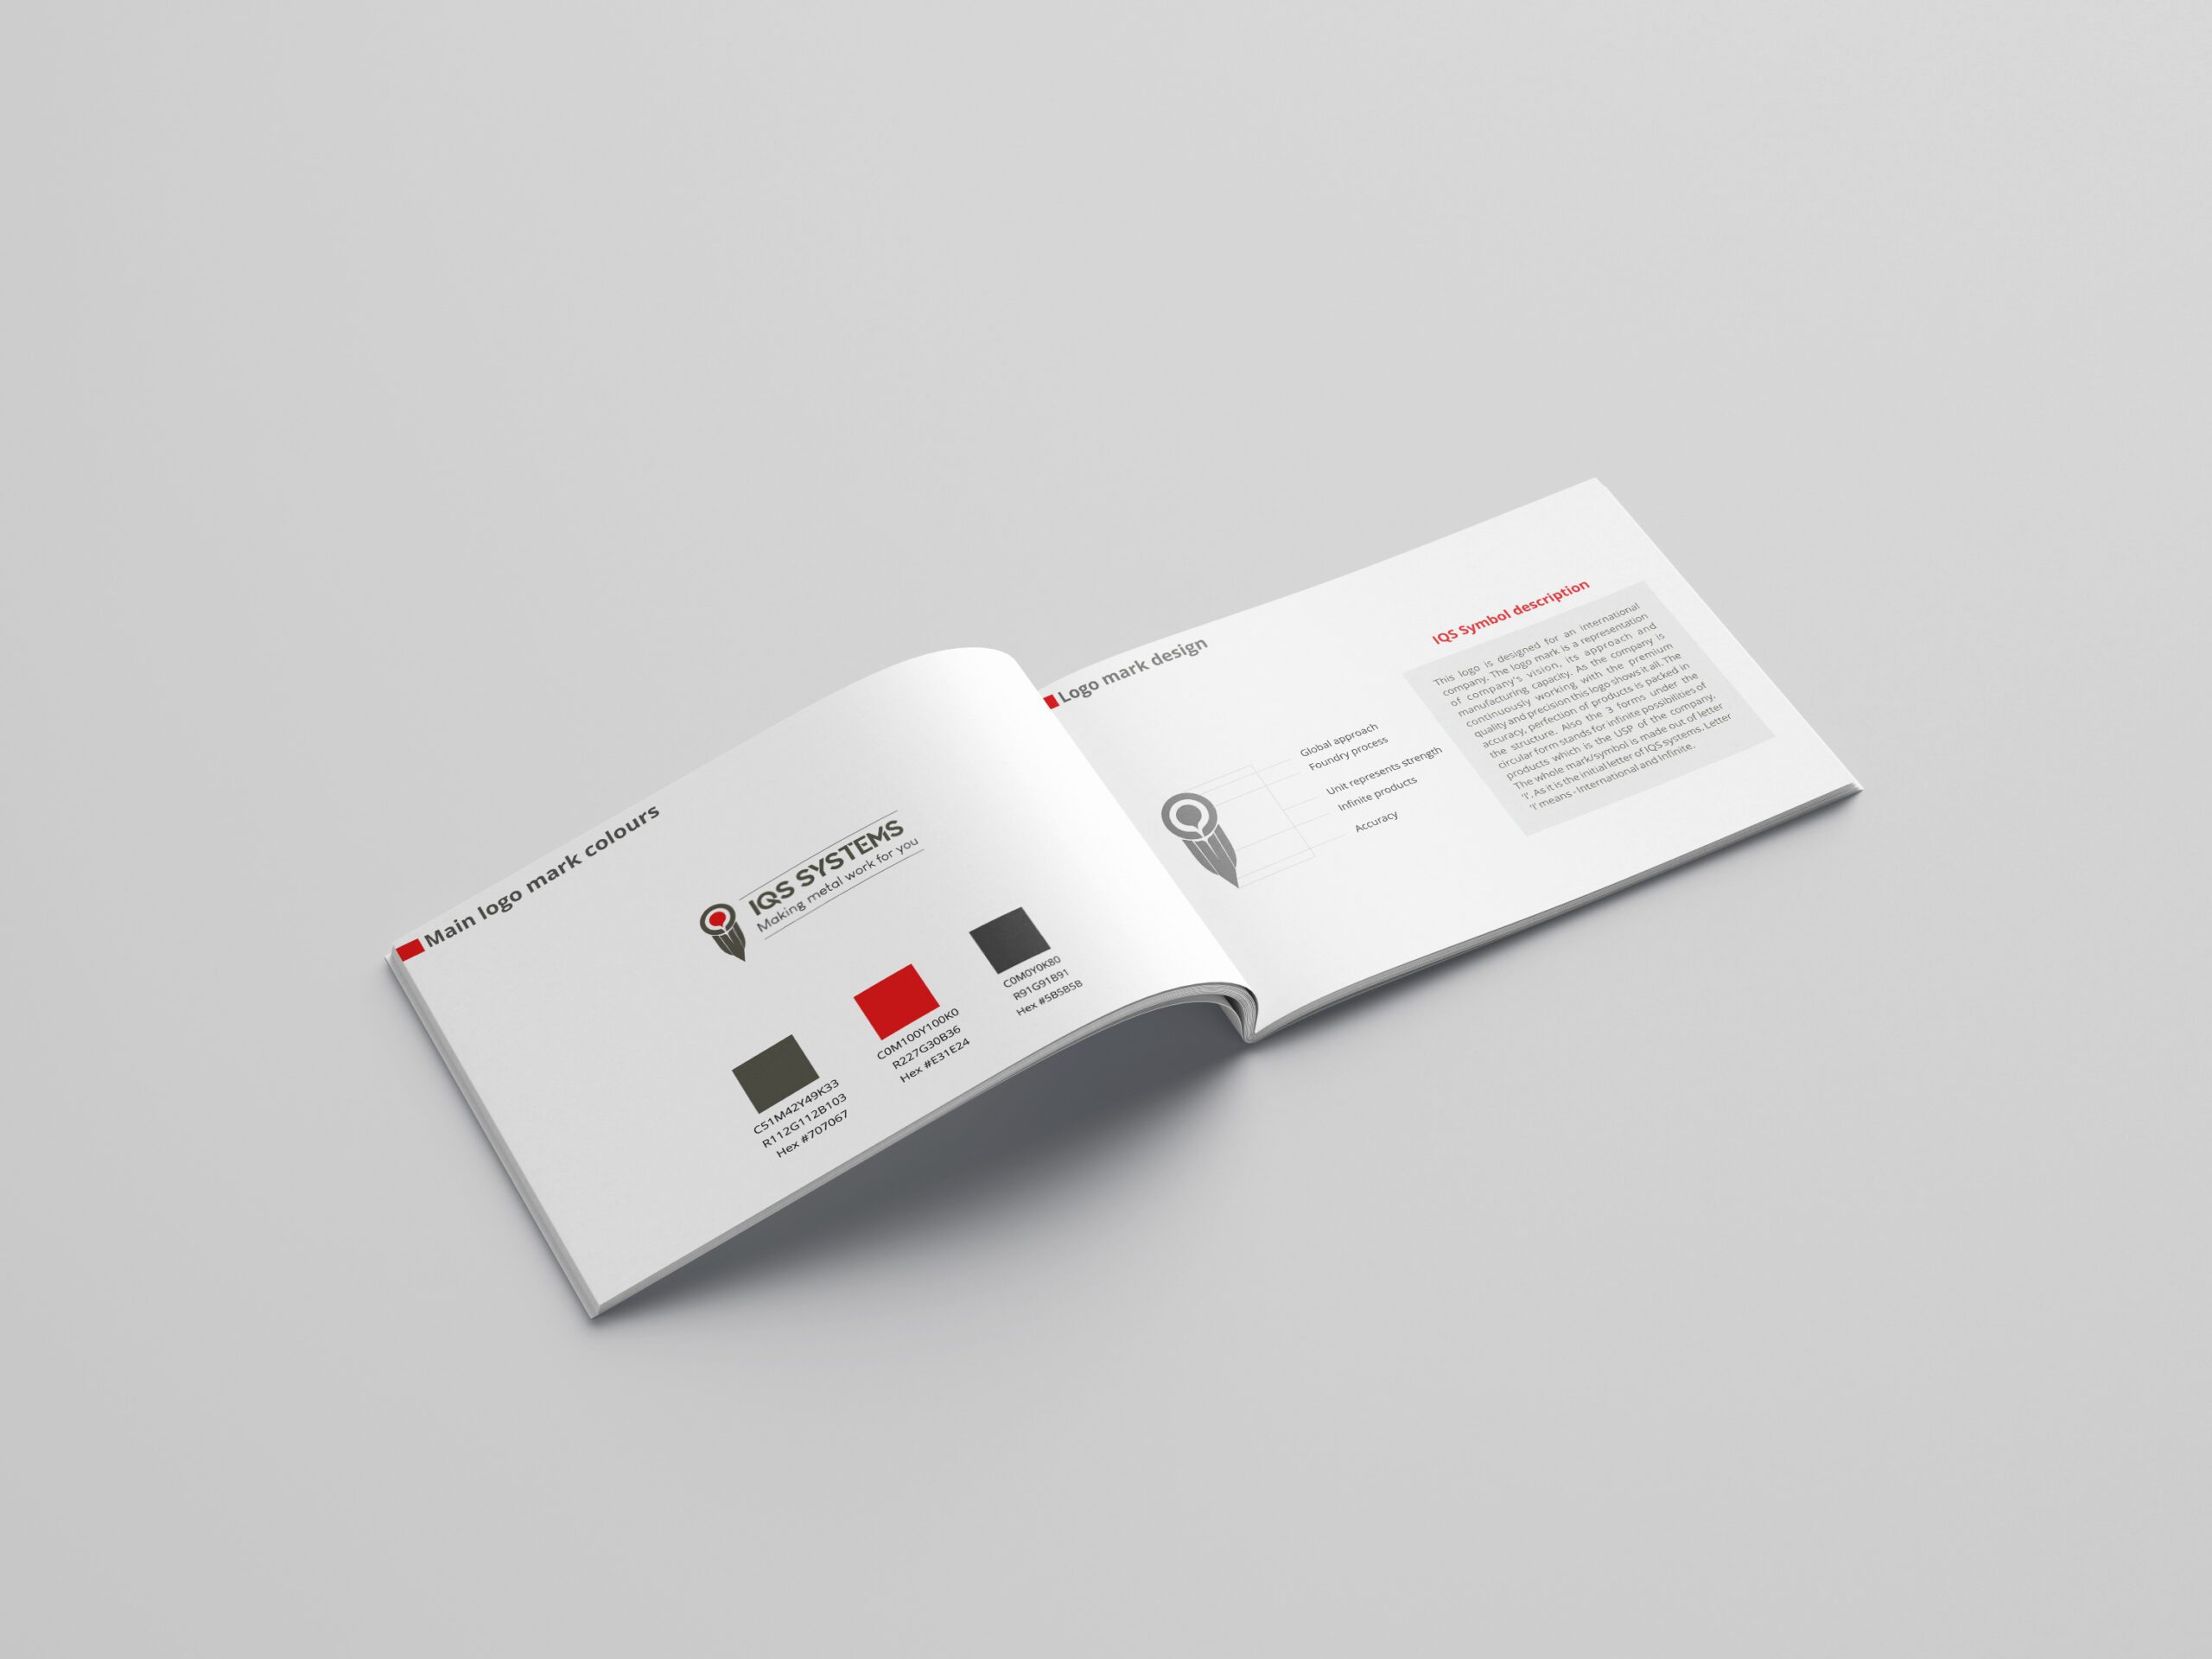 IQS Systems brand manual design by WDSOFT